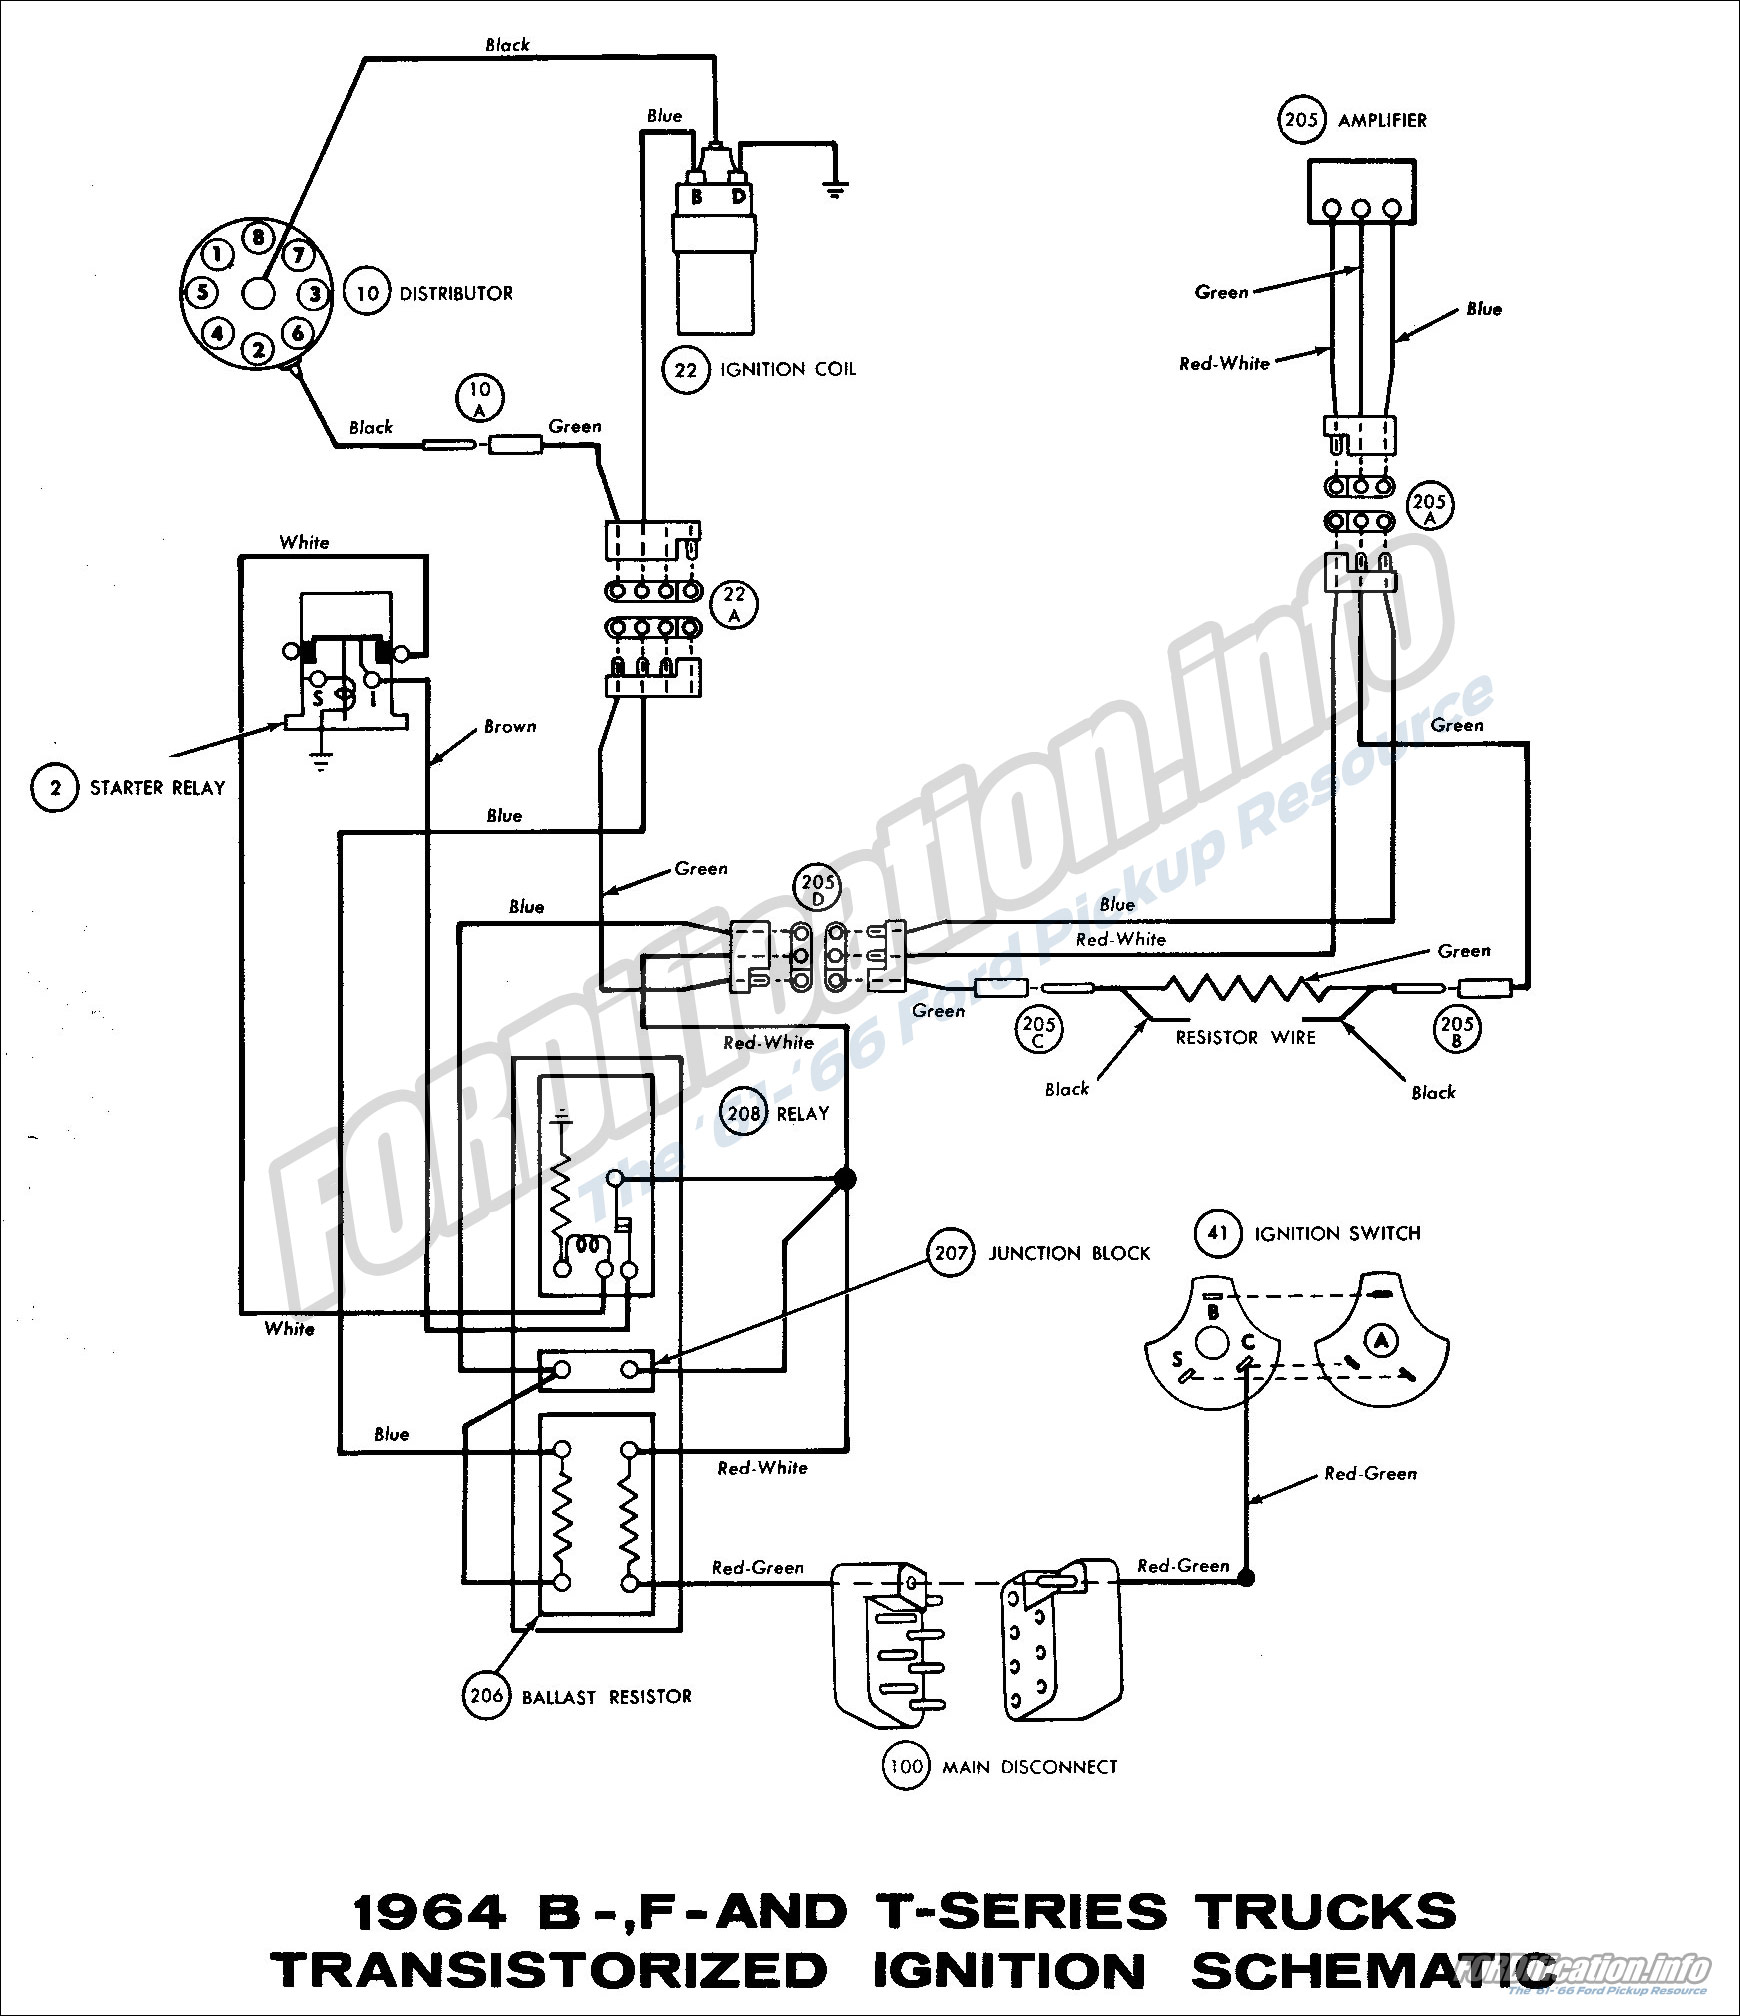 [DIAGRAM_3ER]  AFF01 Ford Truck Ignition Wiring Schematics | Wiring Library | Ford Ignition Switch Wiring |  | Wiring Library